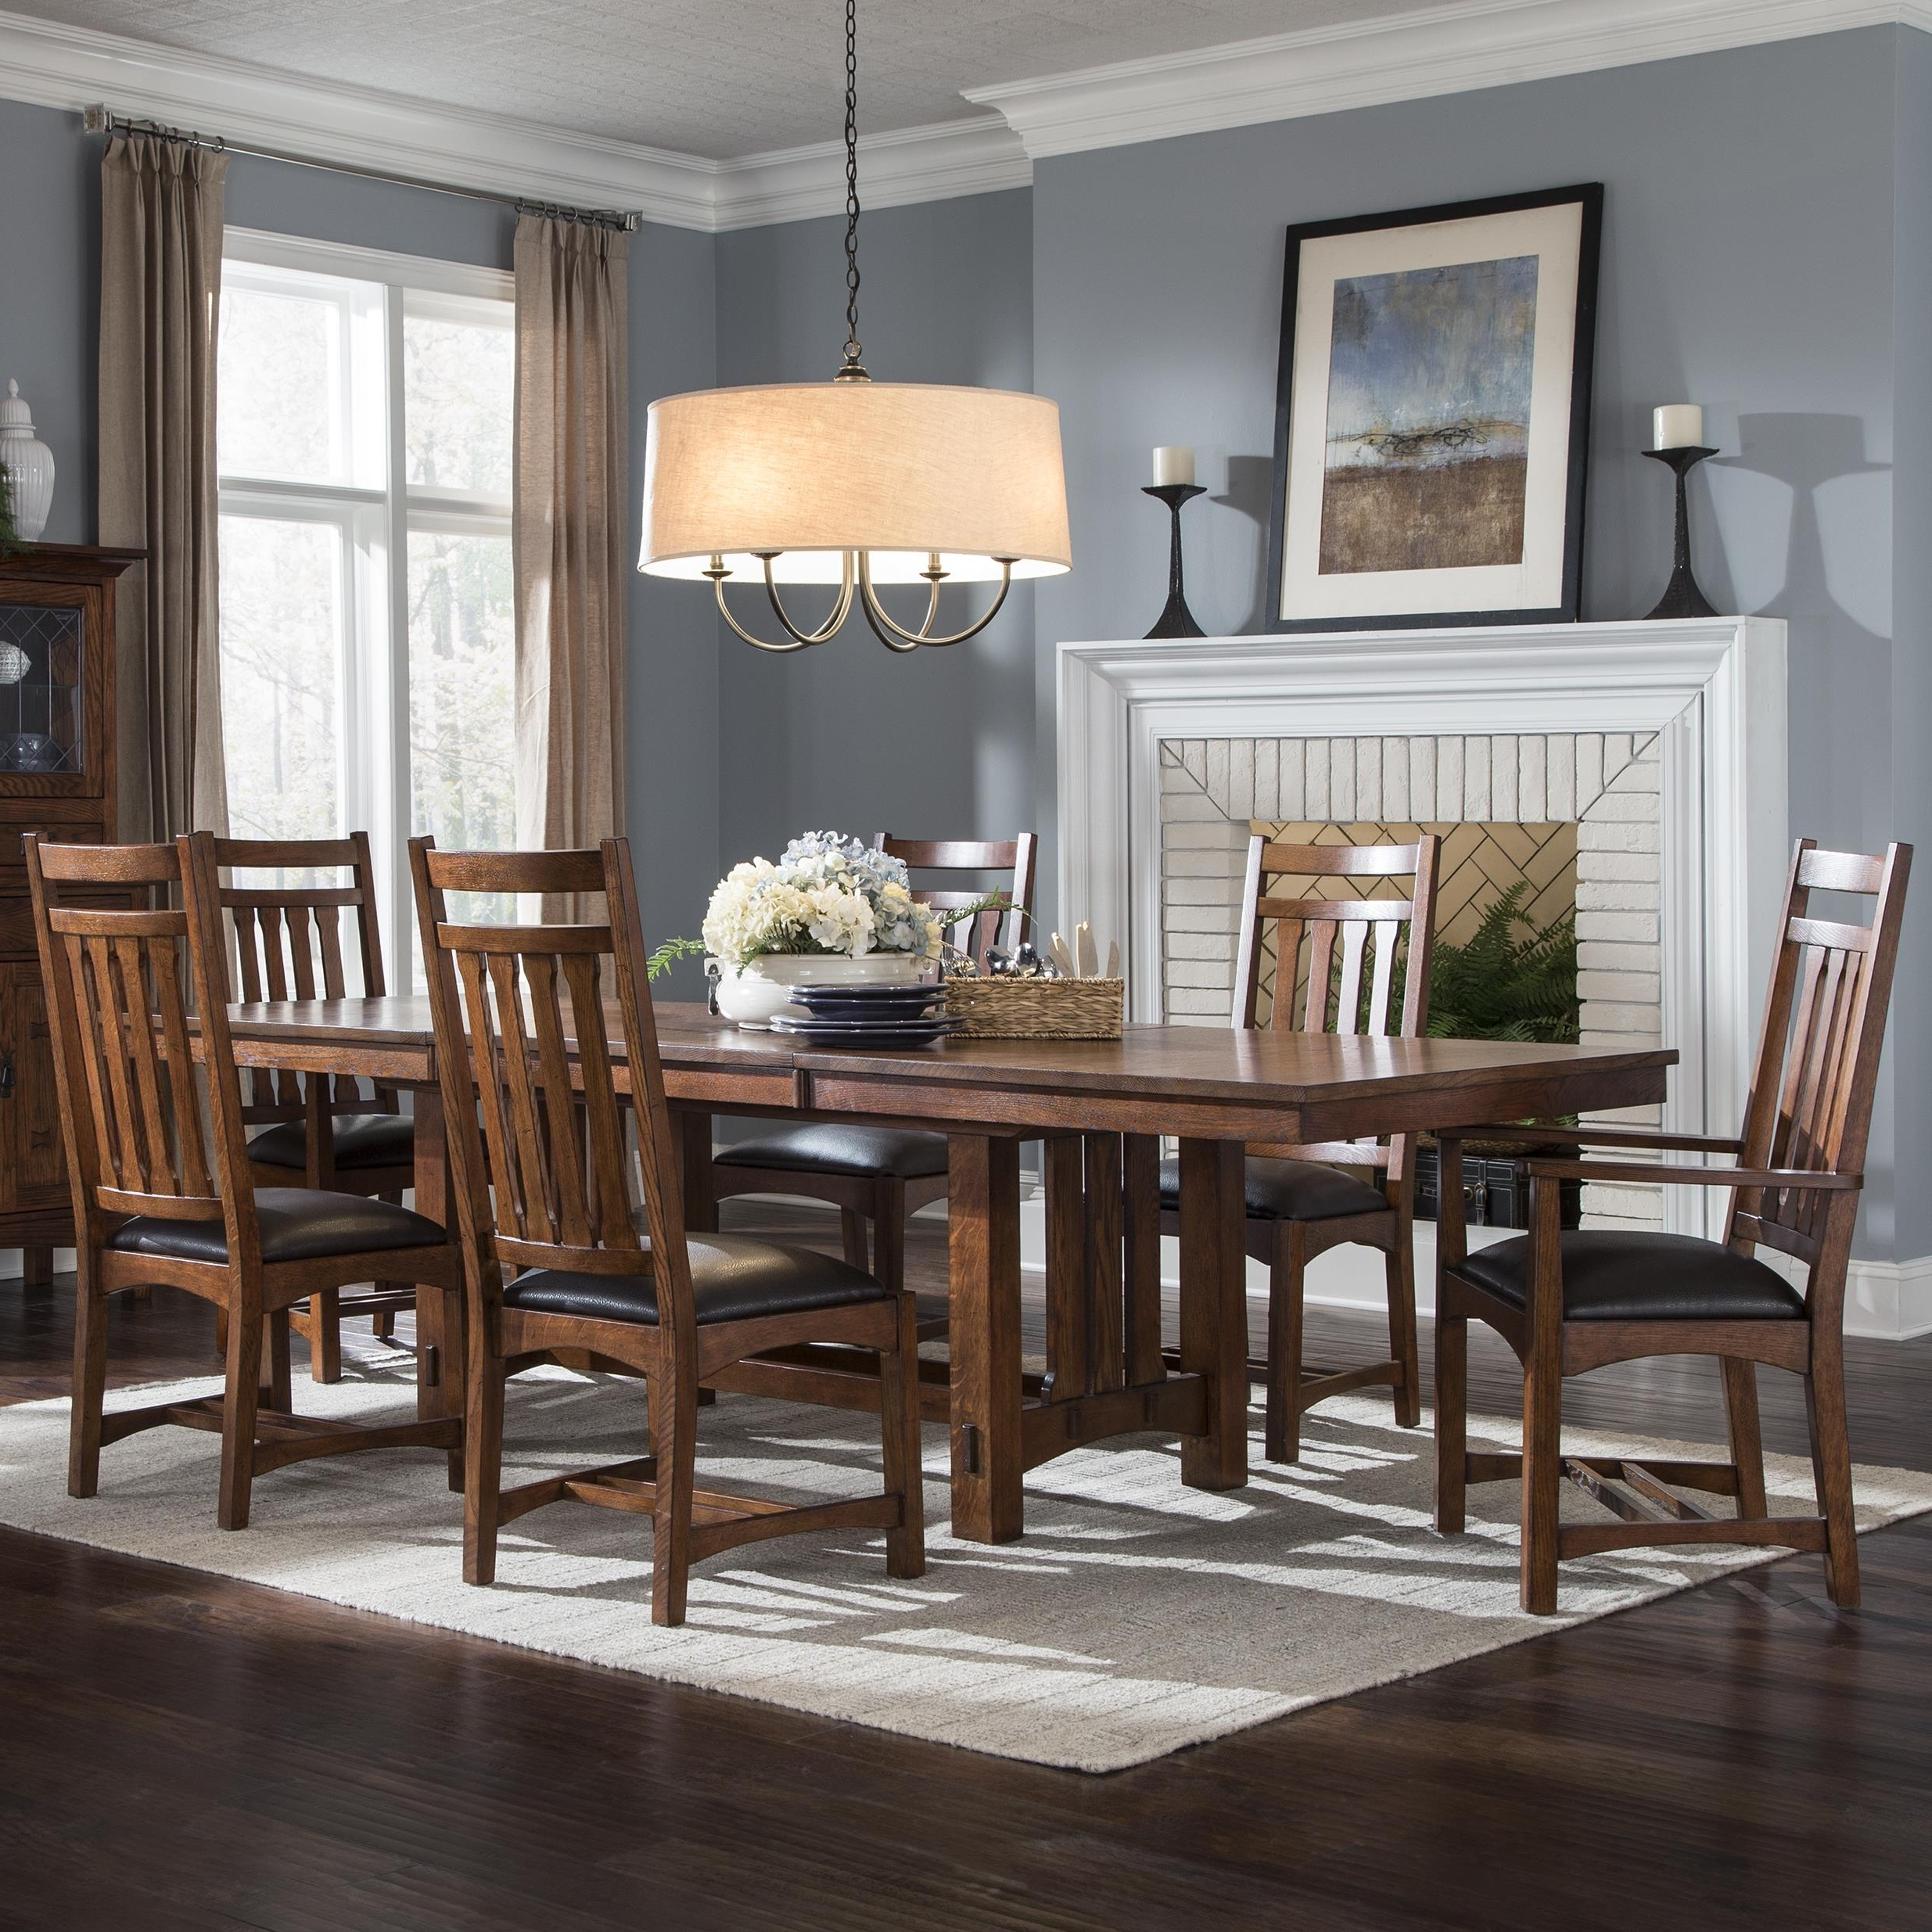 Newest Craftsman 7 Piece Rectangular Extension Dining Sets With Arm & Uph Side Chairs With Regard To Vfm Signature Oak Park 7 Piece Dining Set With Slat Back Chairs (View 14 of 25)